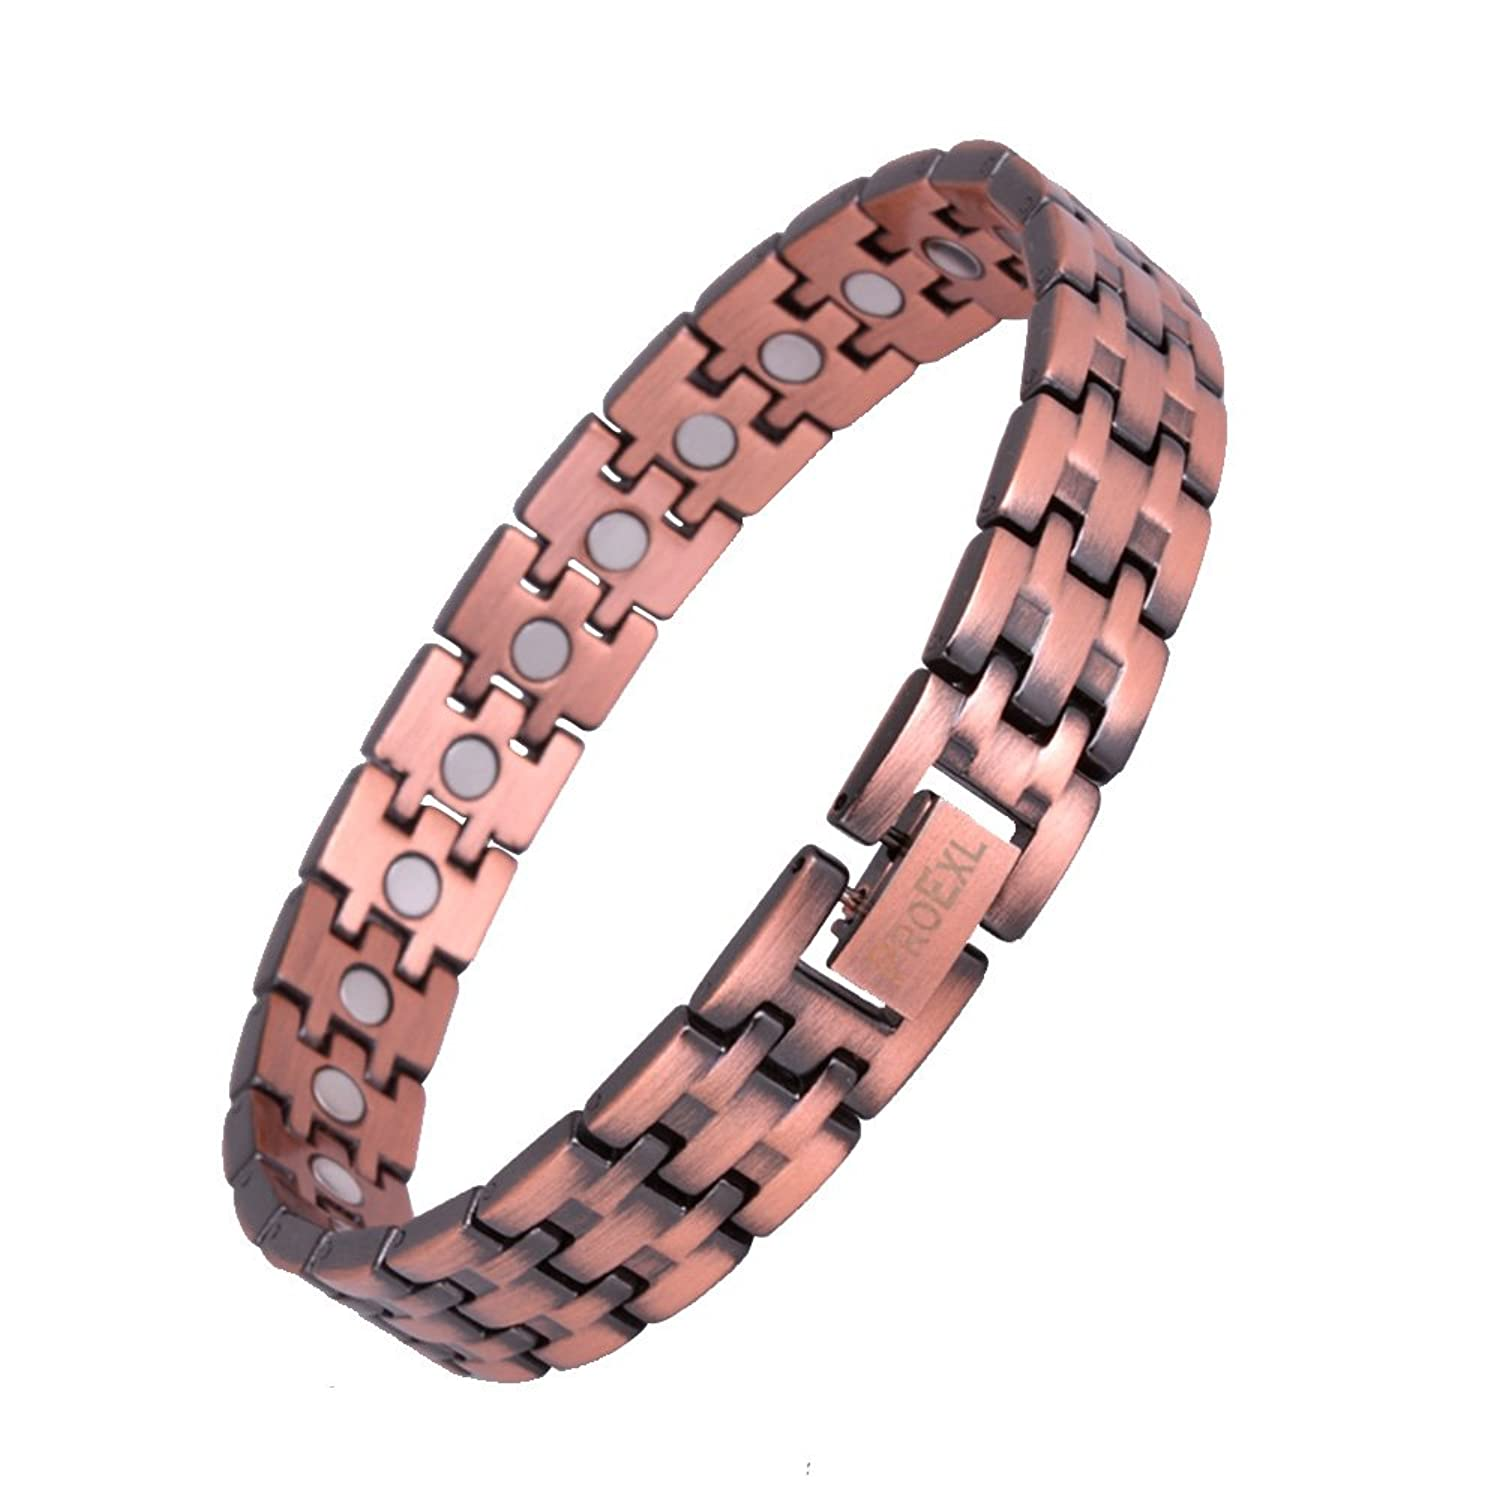 Sufferers wear copper jewelry in the hopes of easing symptoms - Amazon Com Proexl Mens Magnetic Pure Copper Bracelet Toro With Magnets For Arthritis Pain Relief 7 50 Jewelry